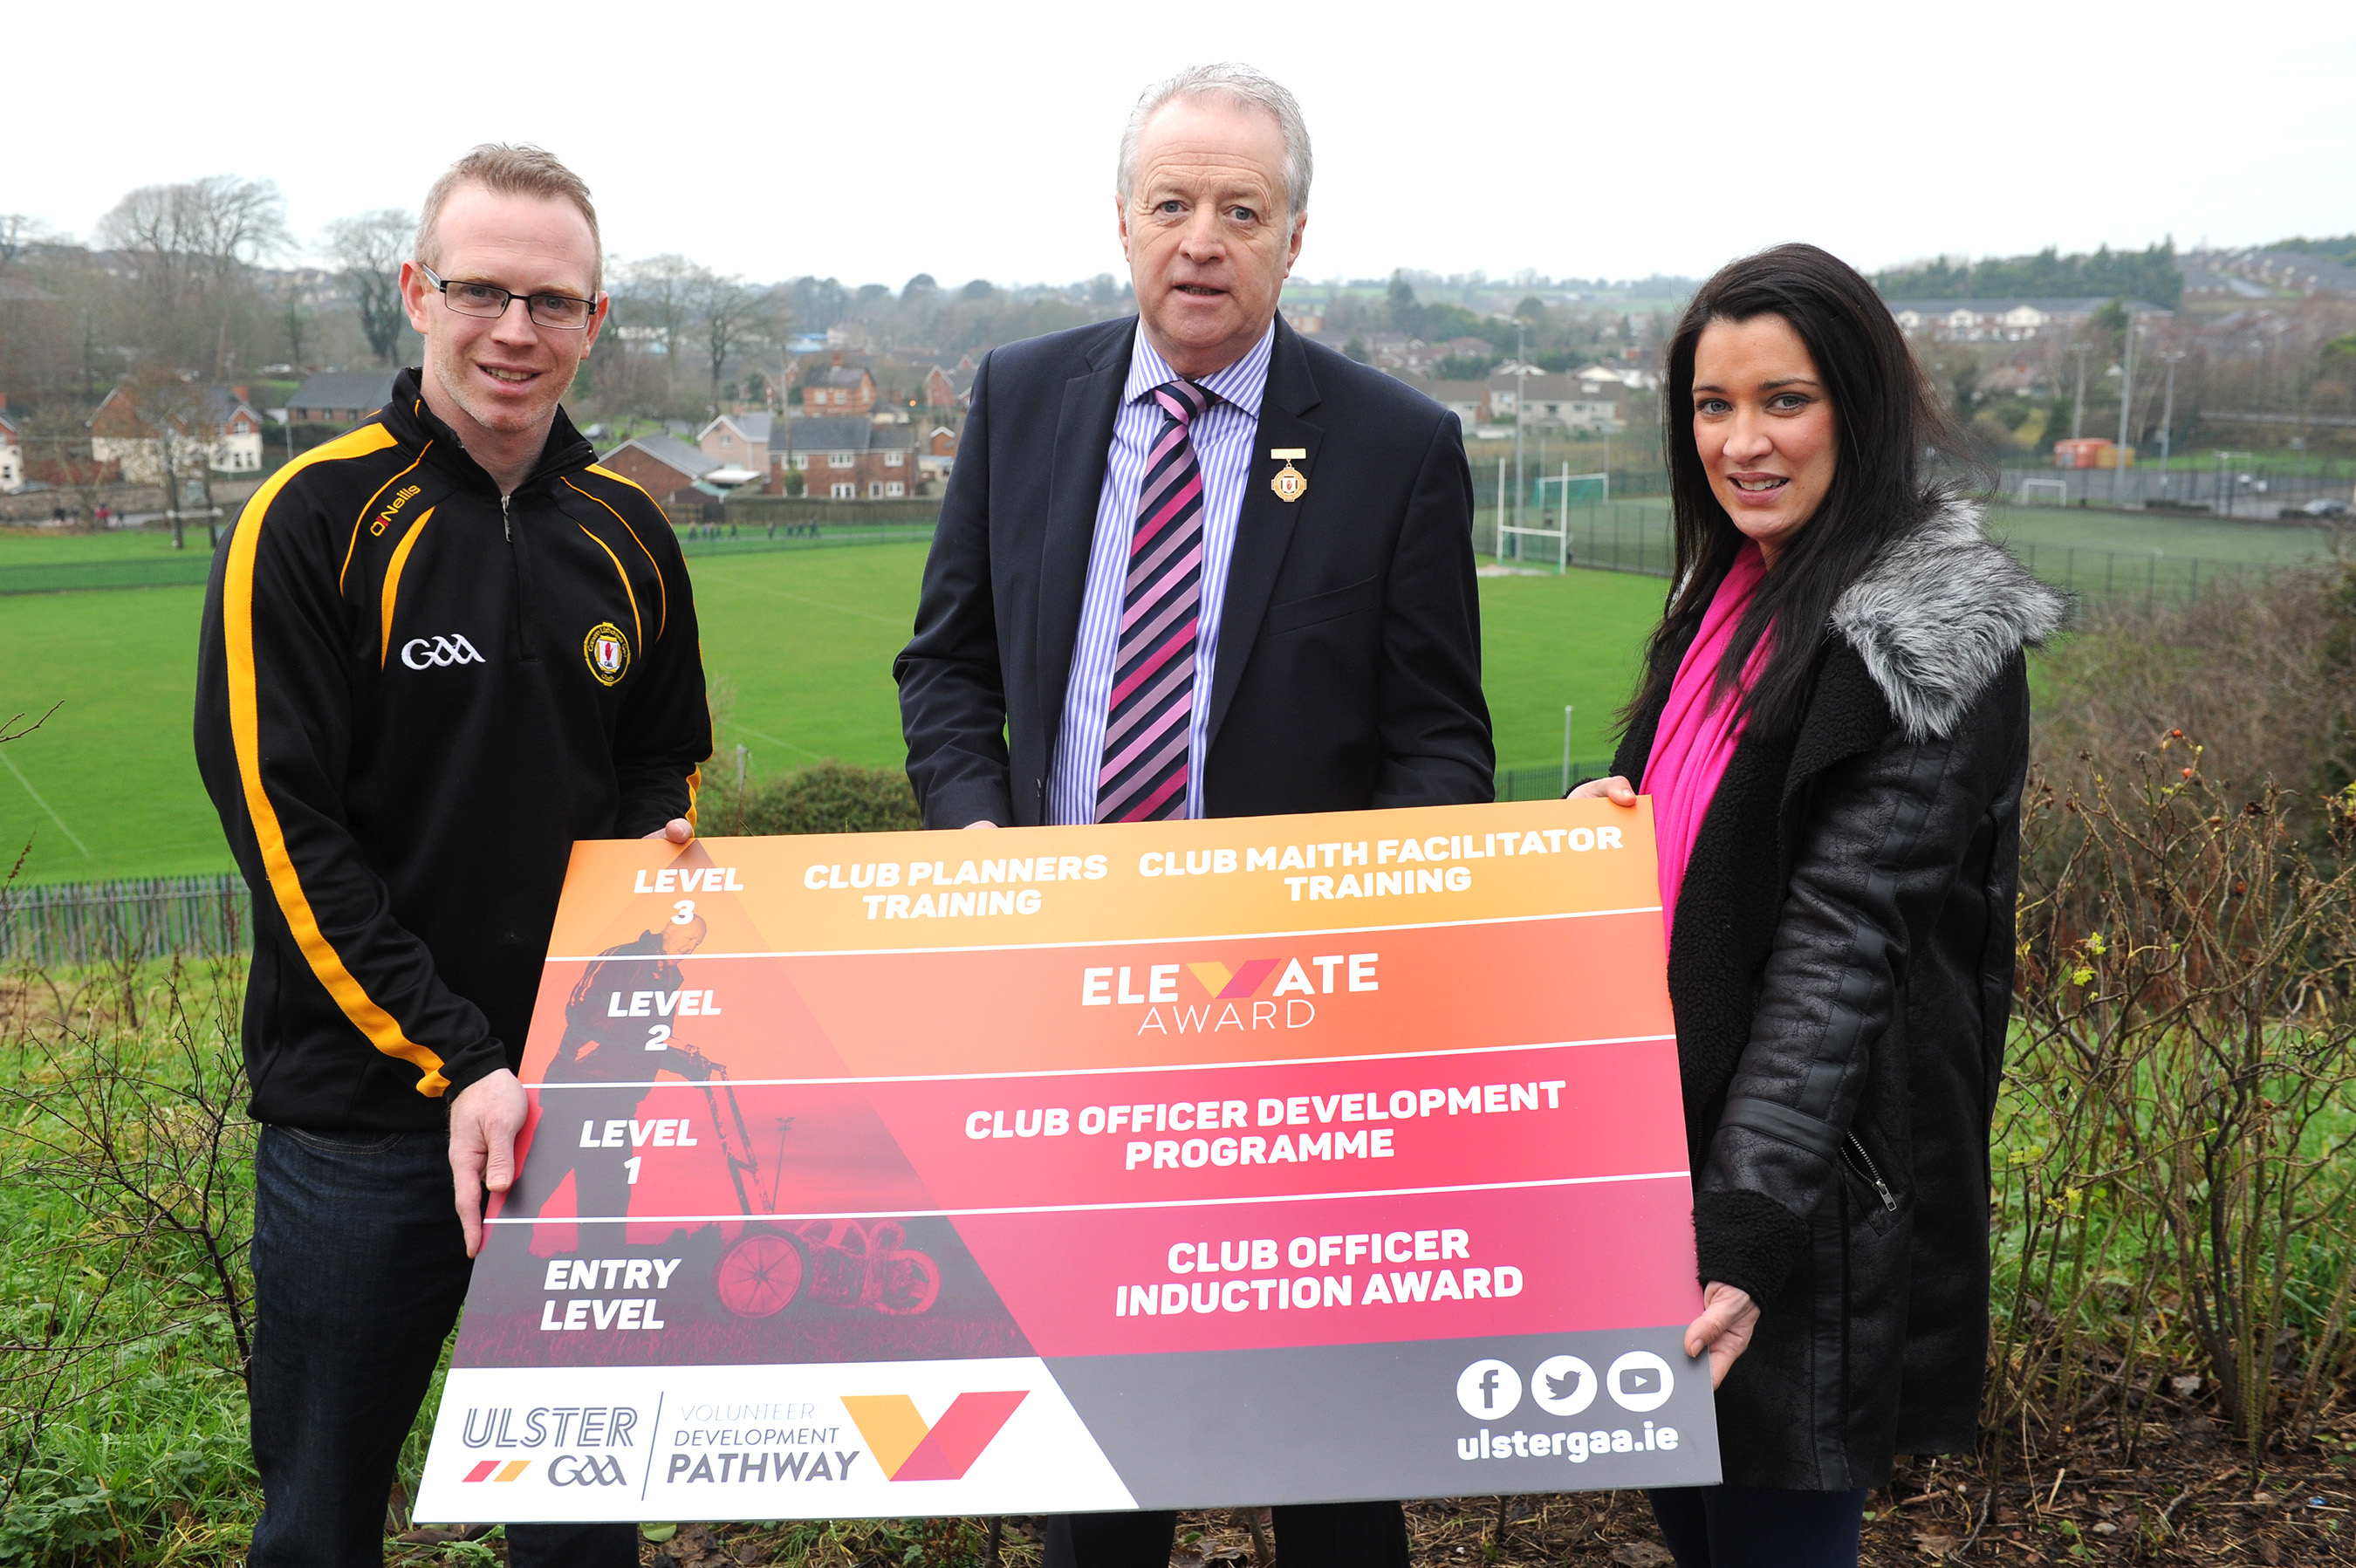 Ulster GAA launch impressive Volunteer Development Pathway